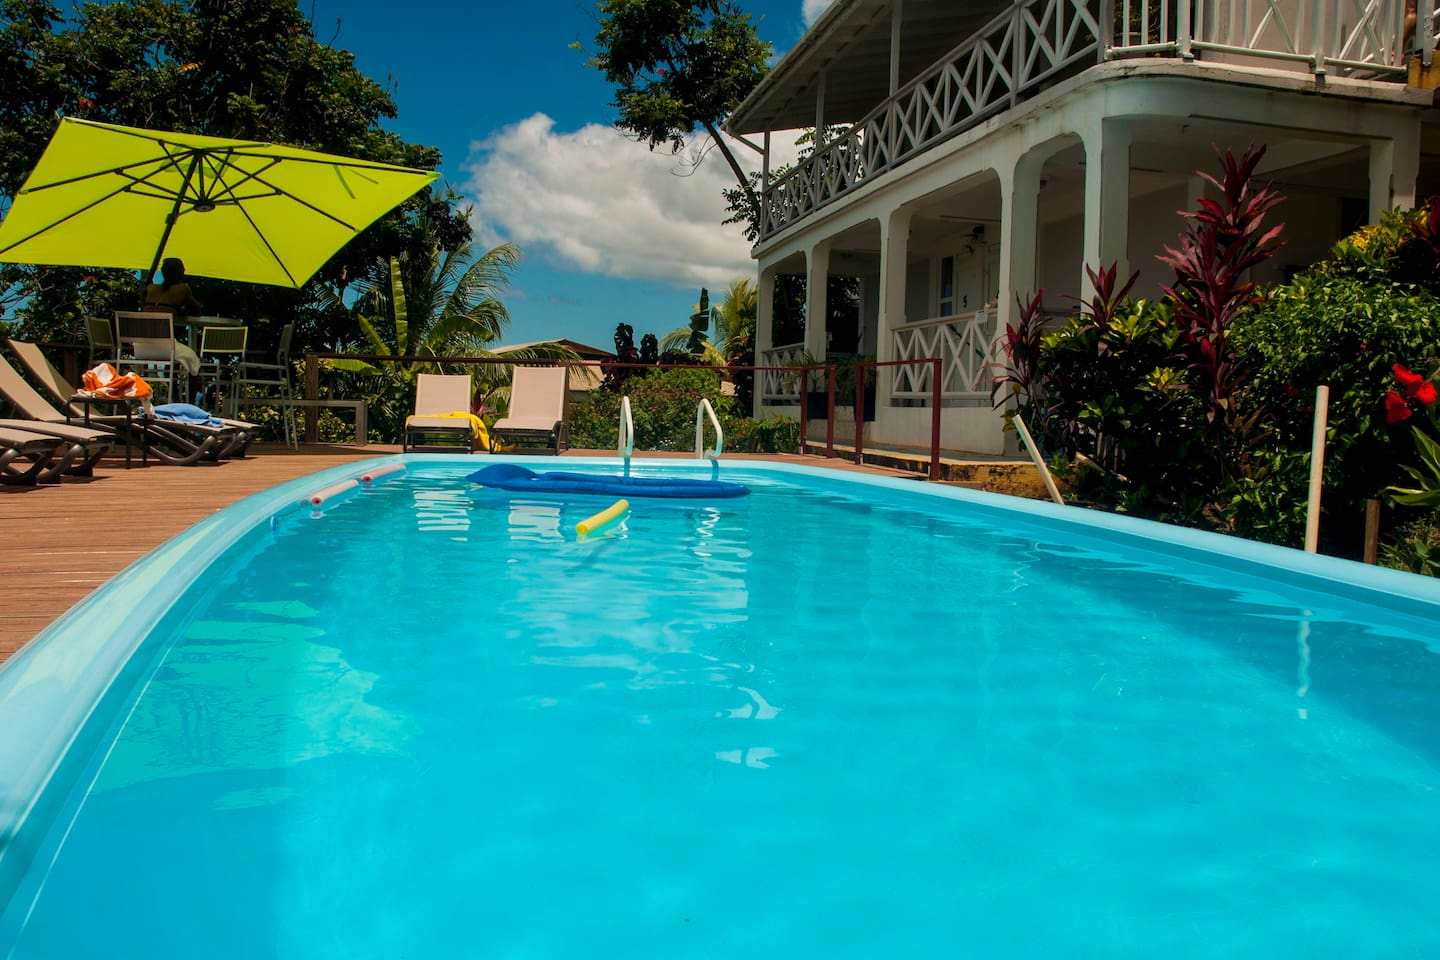 Do you see that little airbed floating on our pool? Have a look at the next picture...